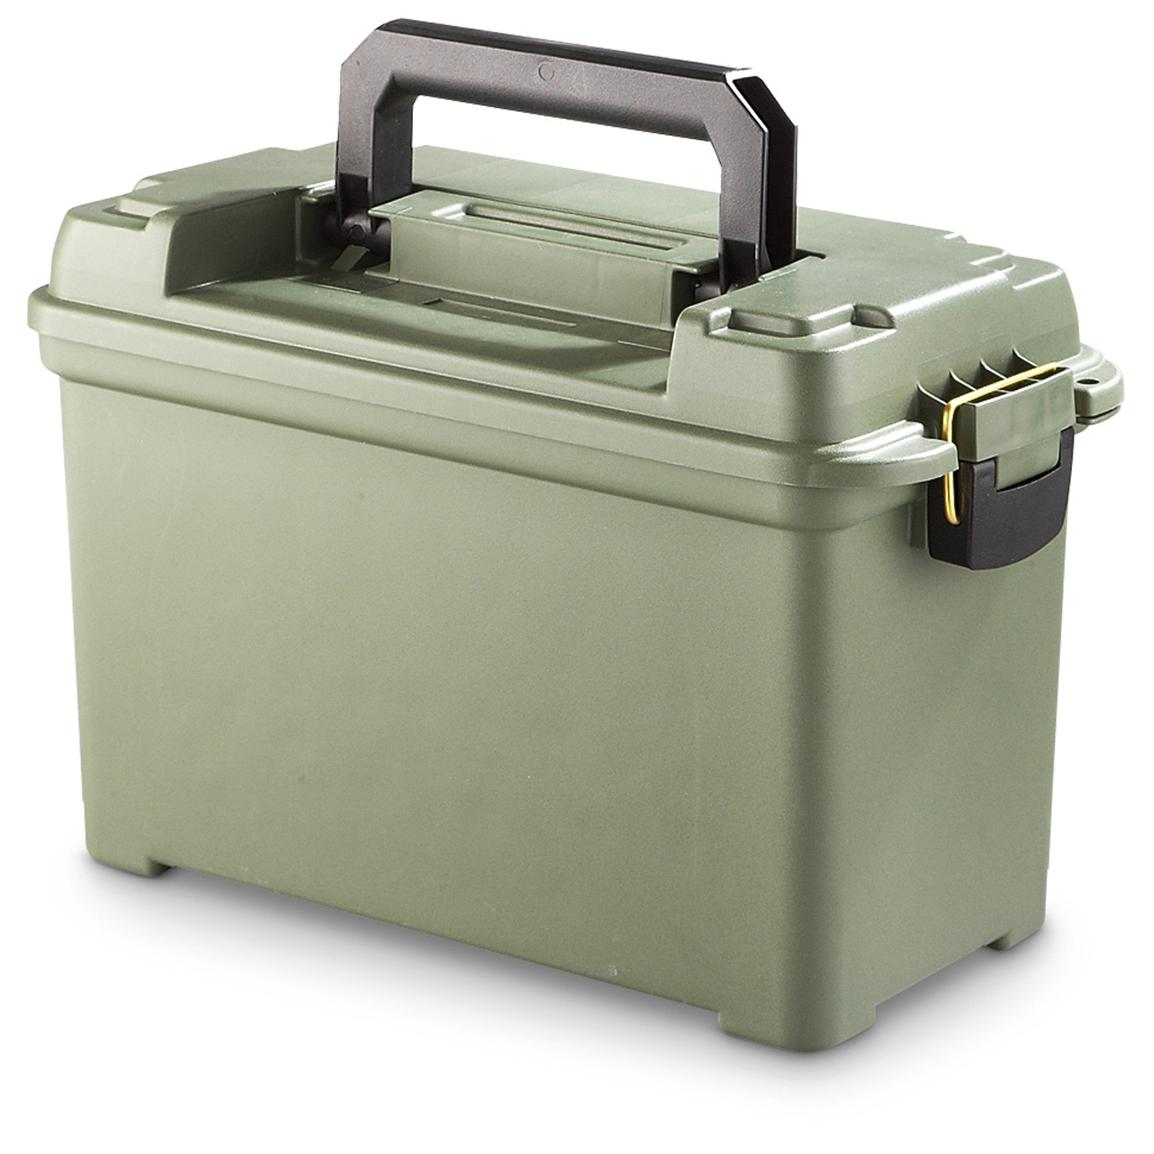 Military Surplus Ammo Cans Military Storage Sportsmans Guide